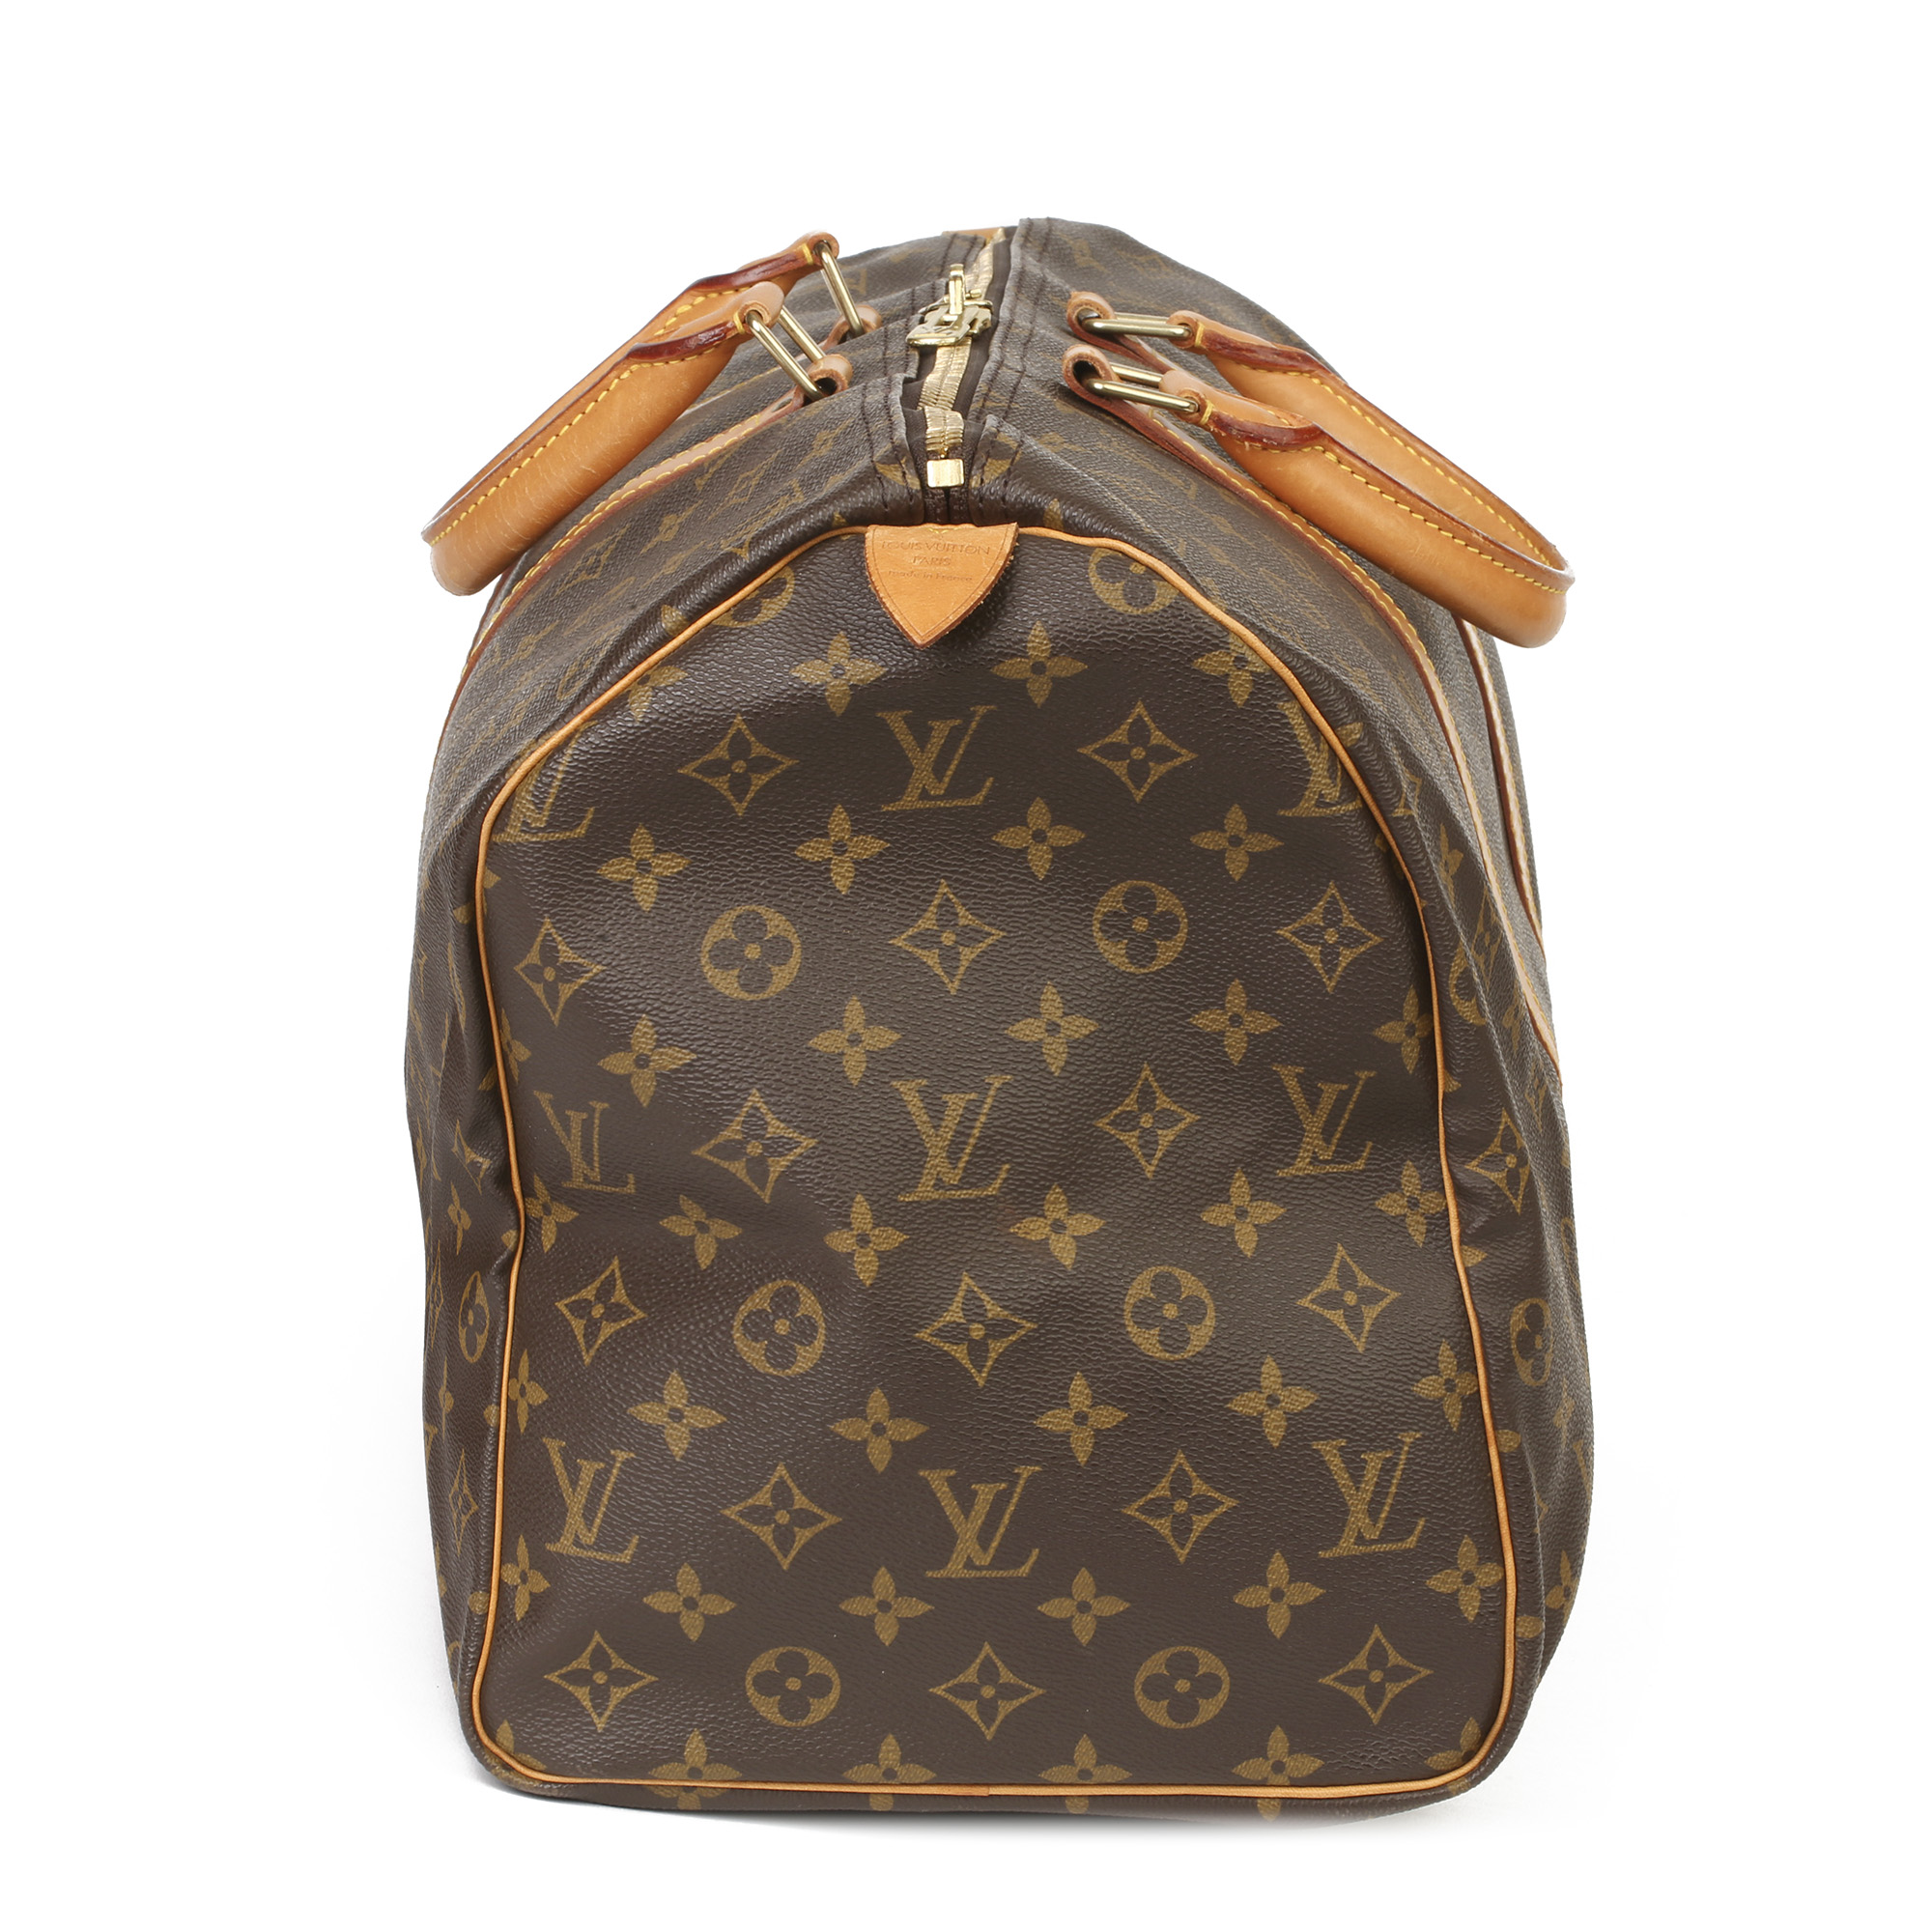 Louis Vuitton Brown Monogram Coated Canvas & Vachetta Leather Vintage Keepall 50 - Image 11 of 11